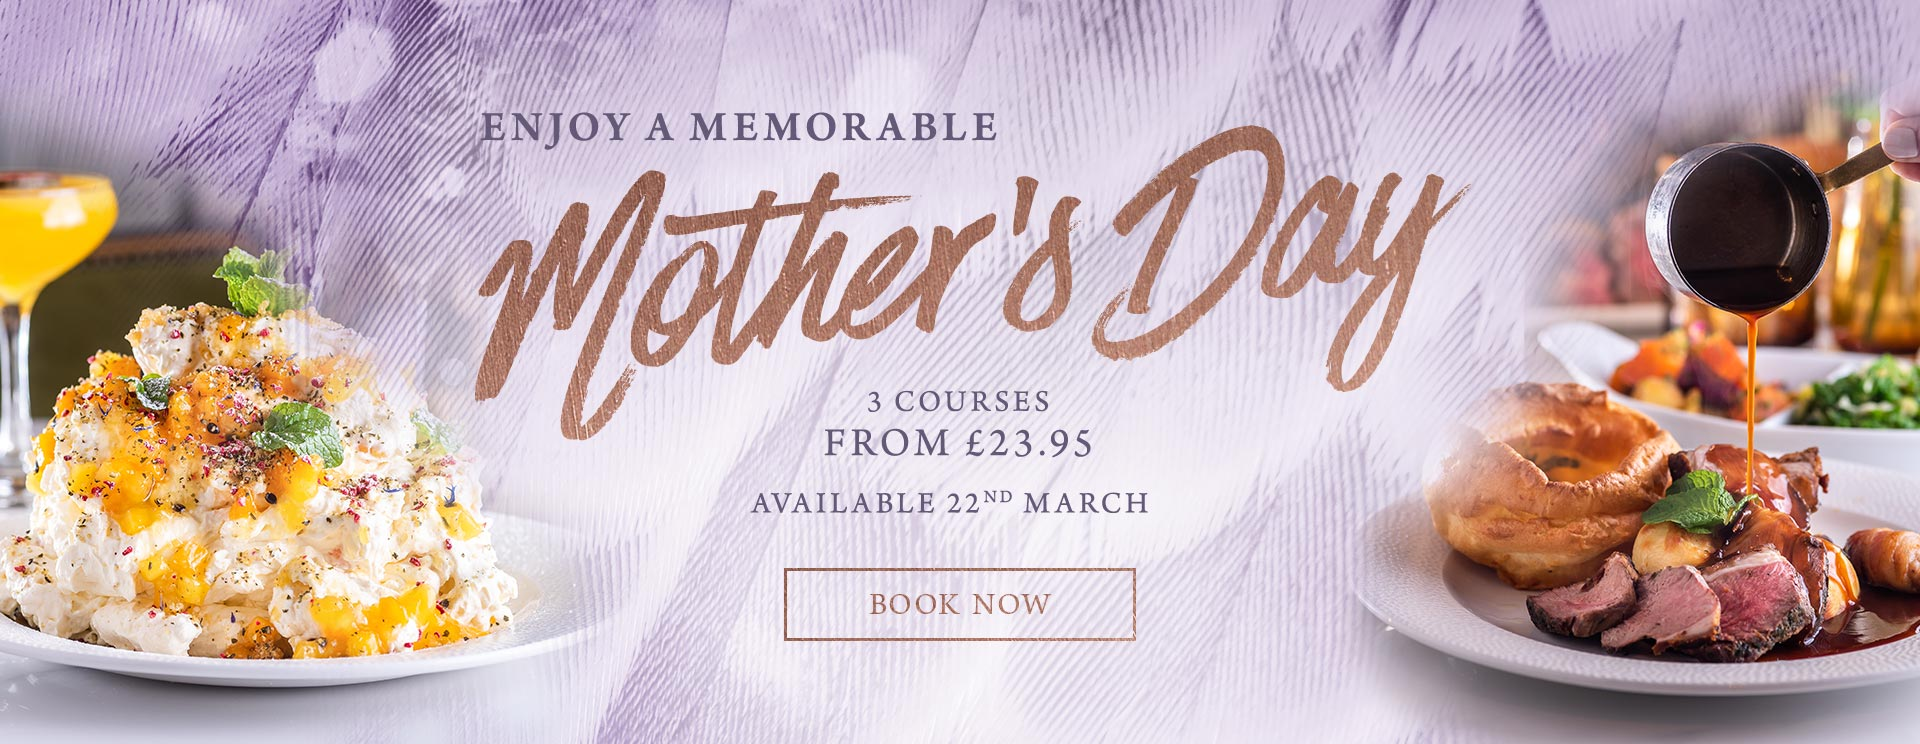 Mother's Day 2019 at The Spade Oak